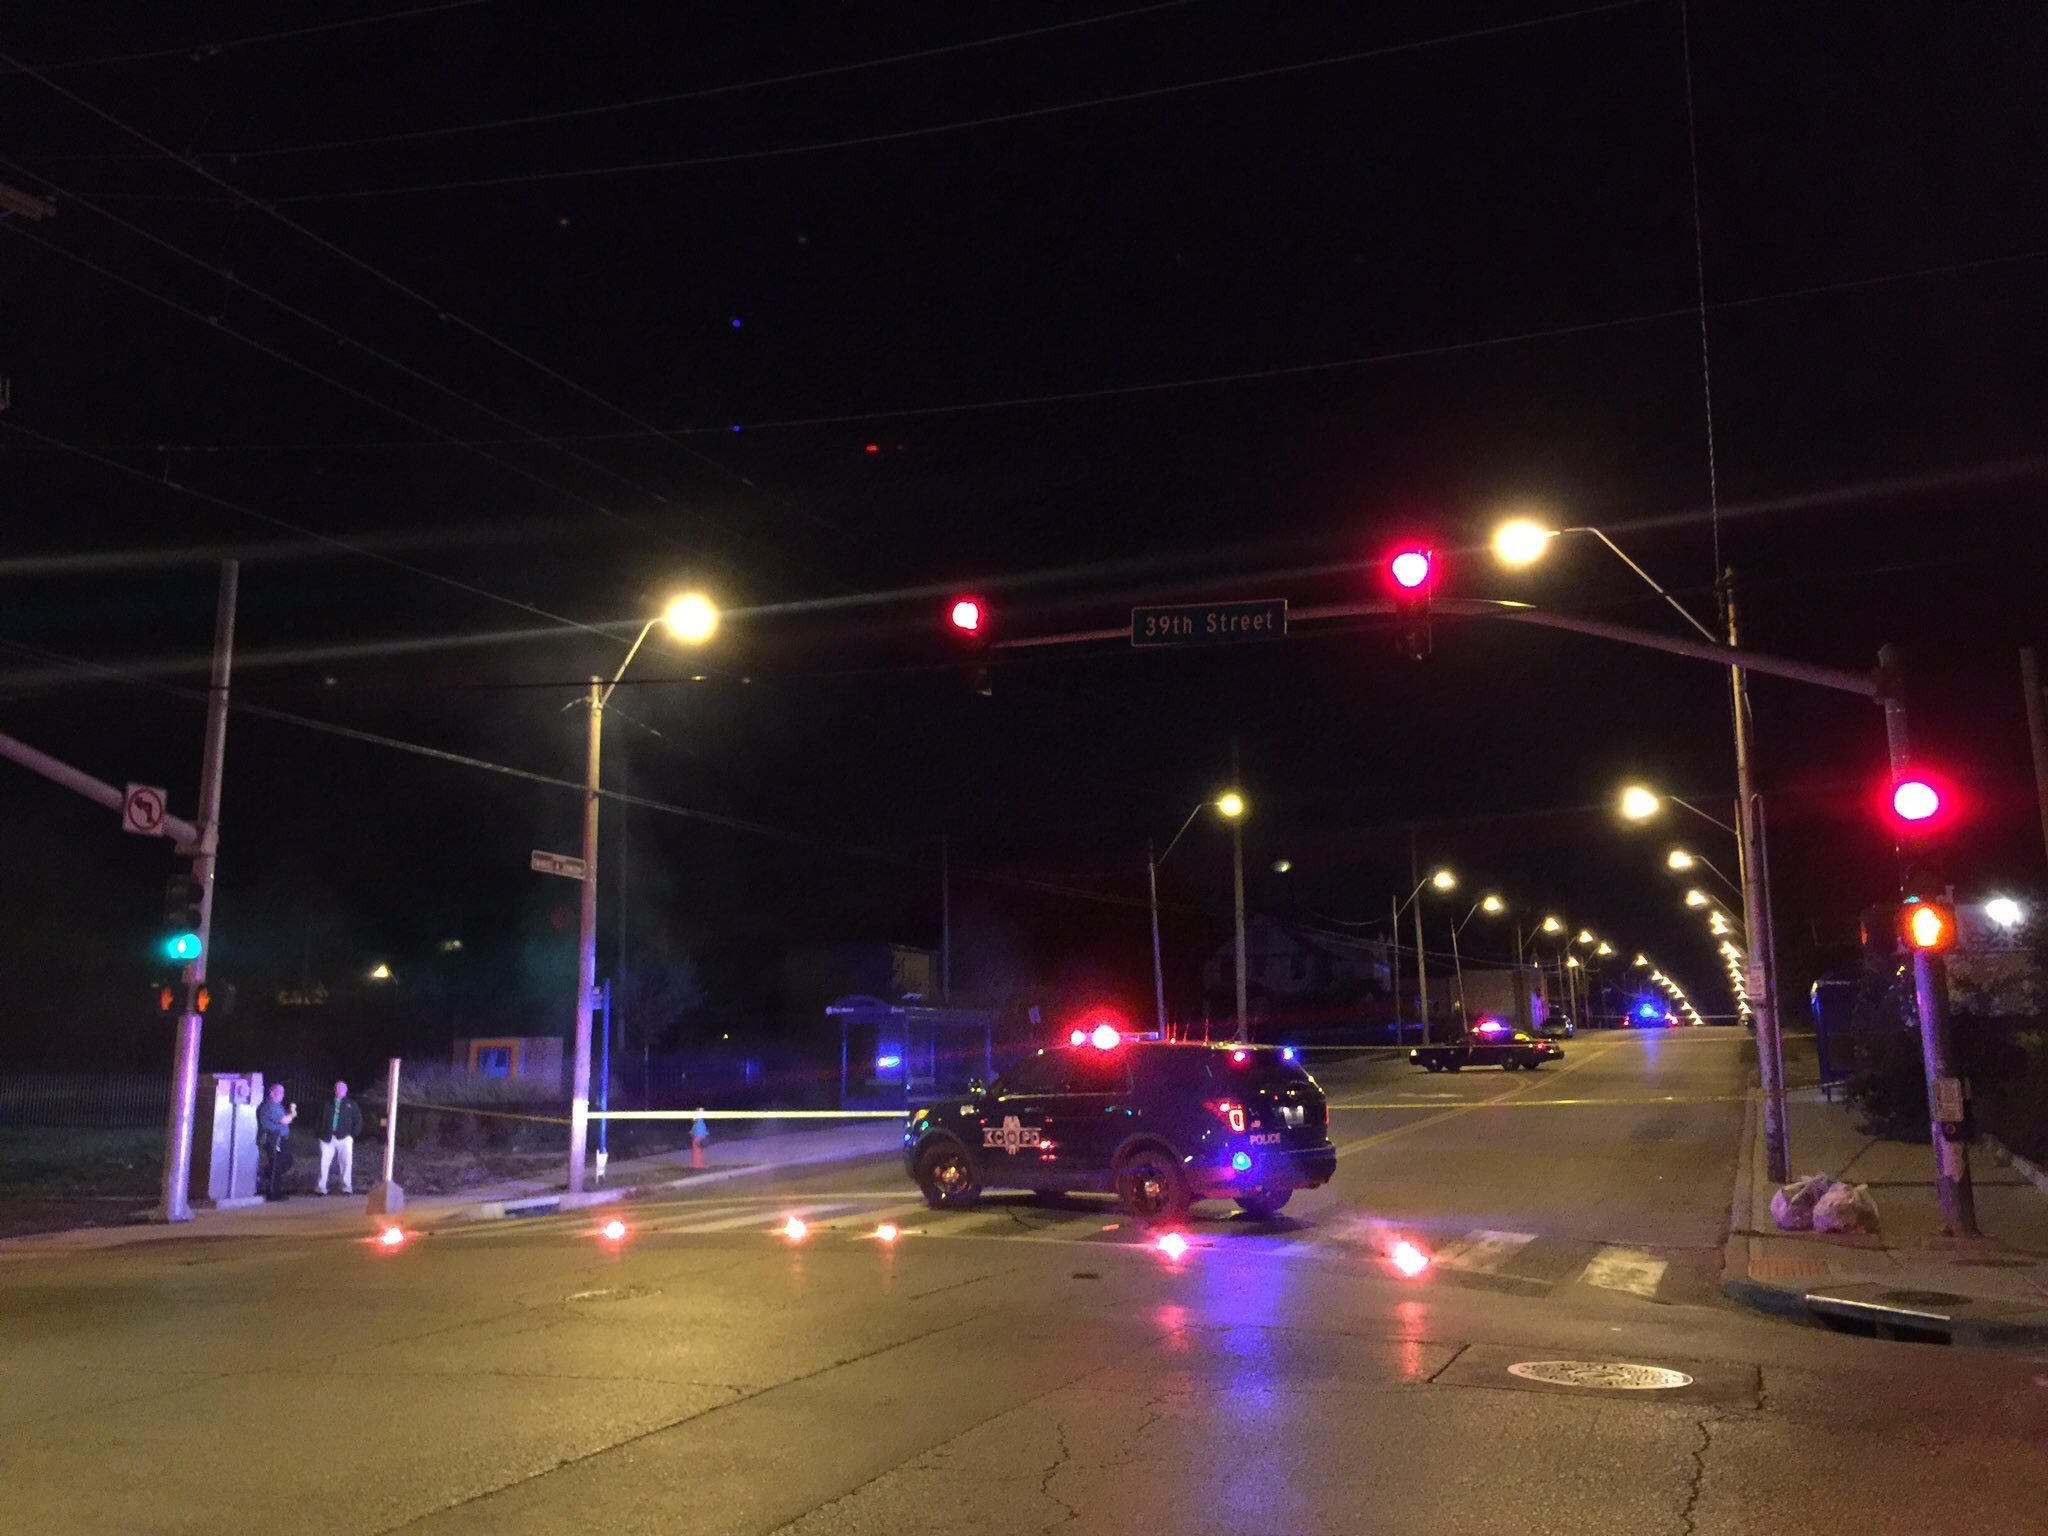 Police say it started with an altercation at a bus stop near about 12:30 a.m. Monday near East 39th Street and Prospect Avenue. (Charlie Misra/KCTV5 News)